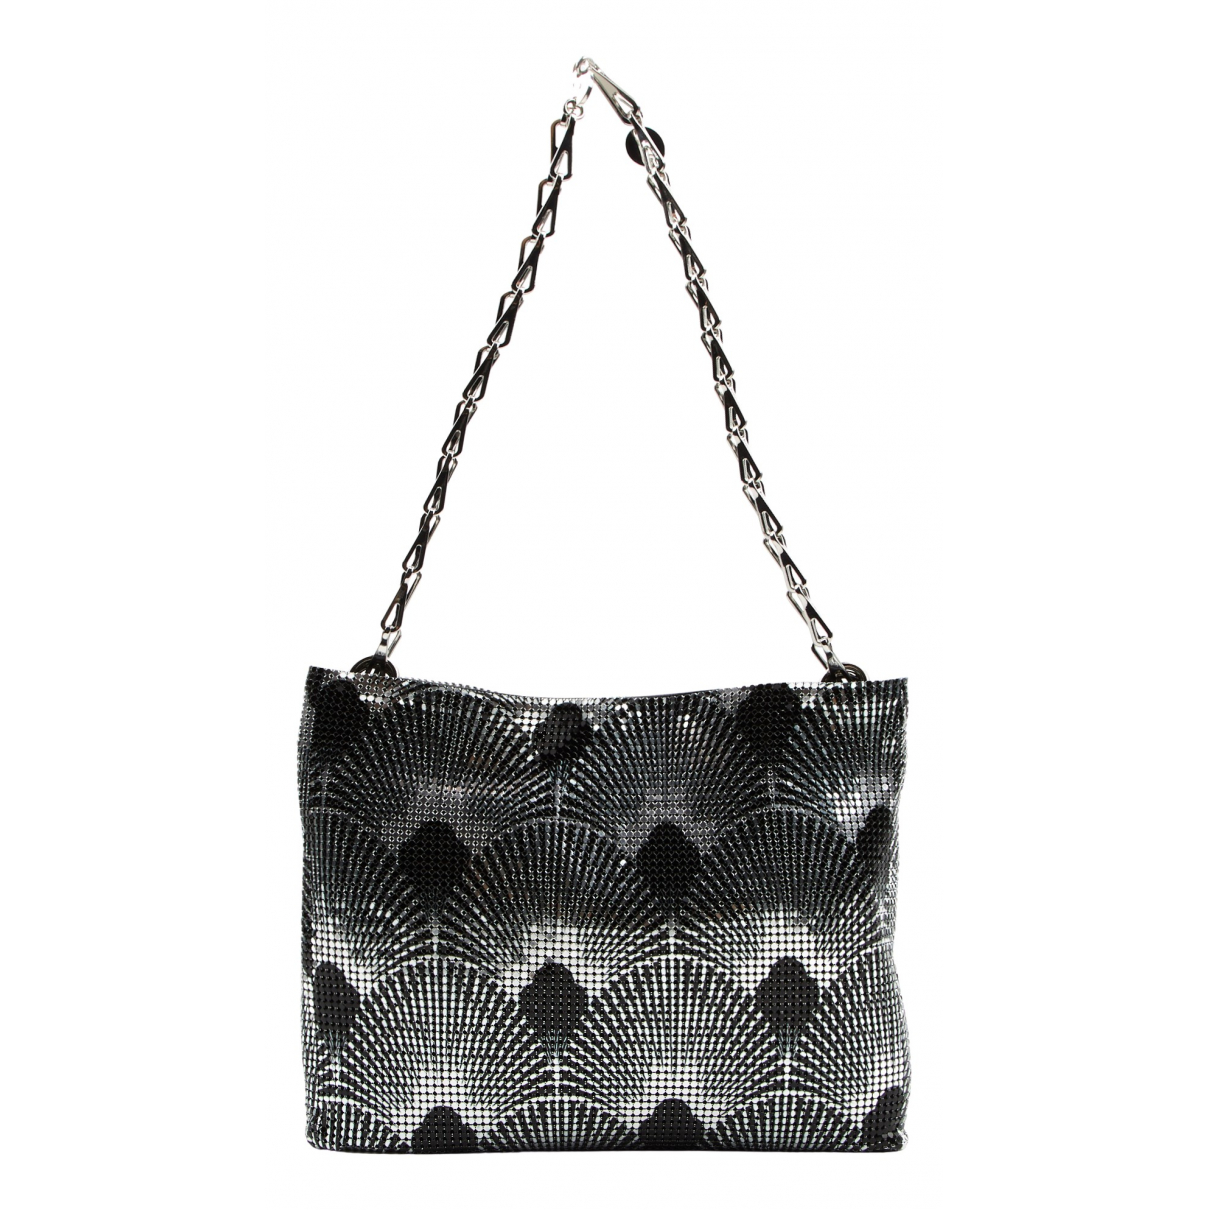 Paco Rabanne \N Silver Metal handbag for Women \N